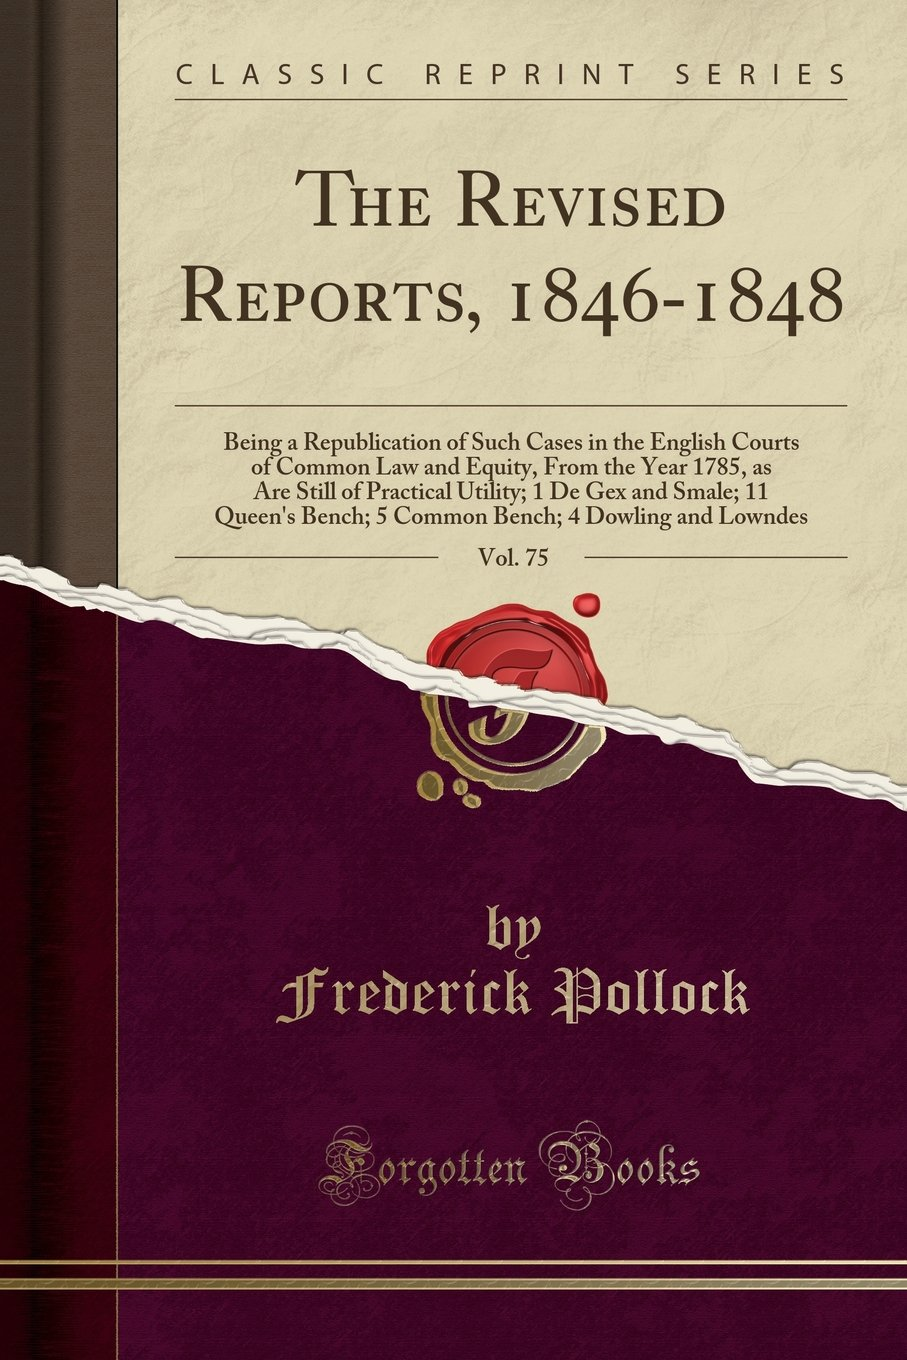 Download The Revised Reports, 1846-1848, Vol. 75: Being a Republication of Such Cases in the English Courts of Common Law and Equity, From the Year 1785, as ... Bench; 5 Common Bench; 4 Dowling and Lowndes ebook